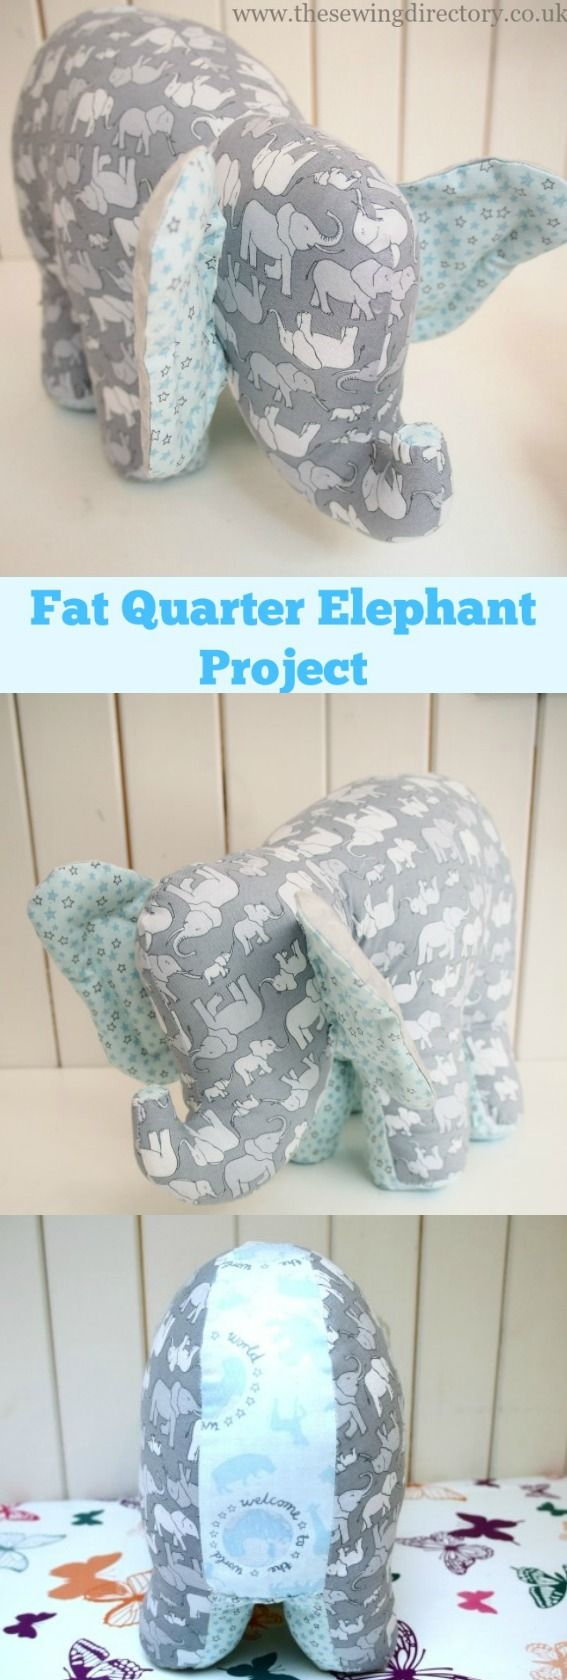 Sew this adorable soft toy elephant with 4 fat quarters of fabric #fatquarterproject #softtoyproject